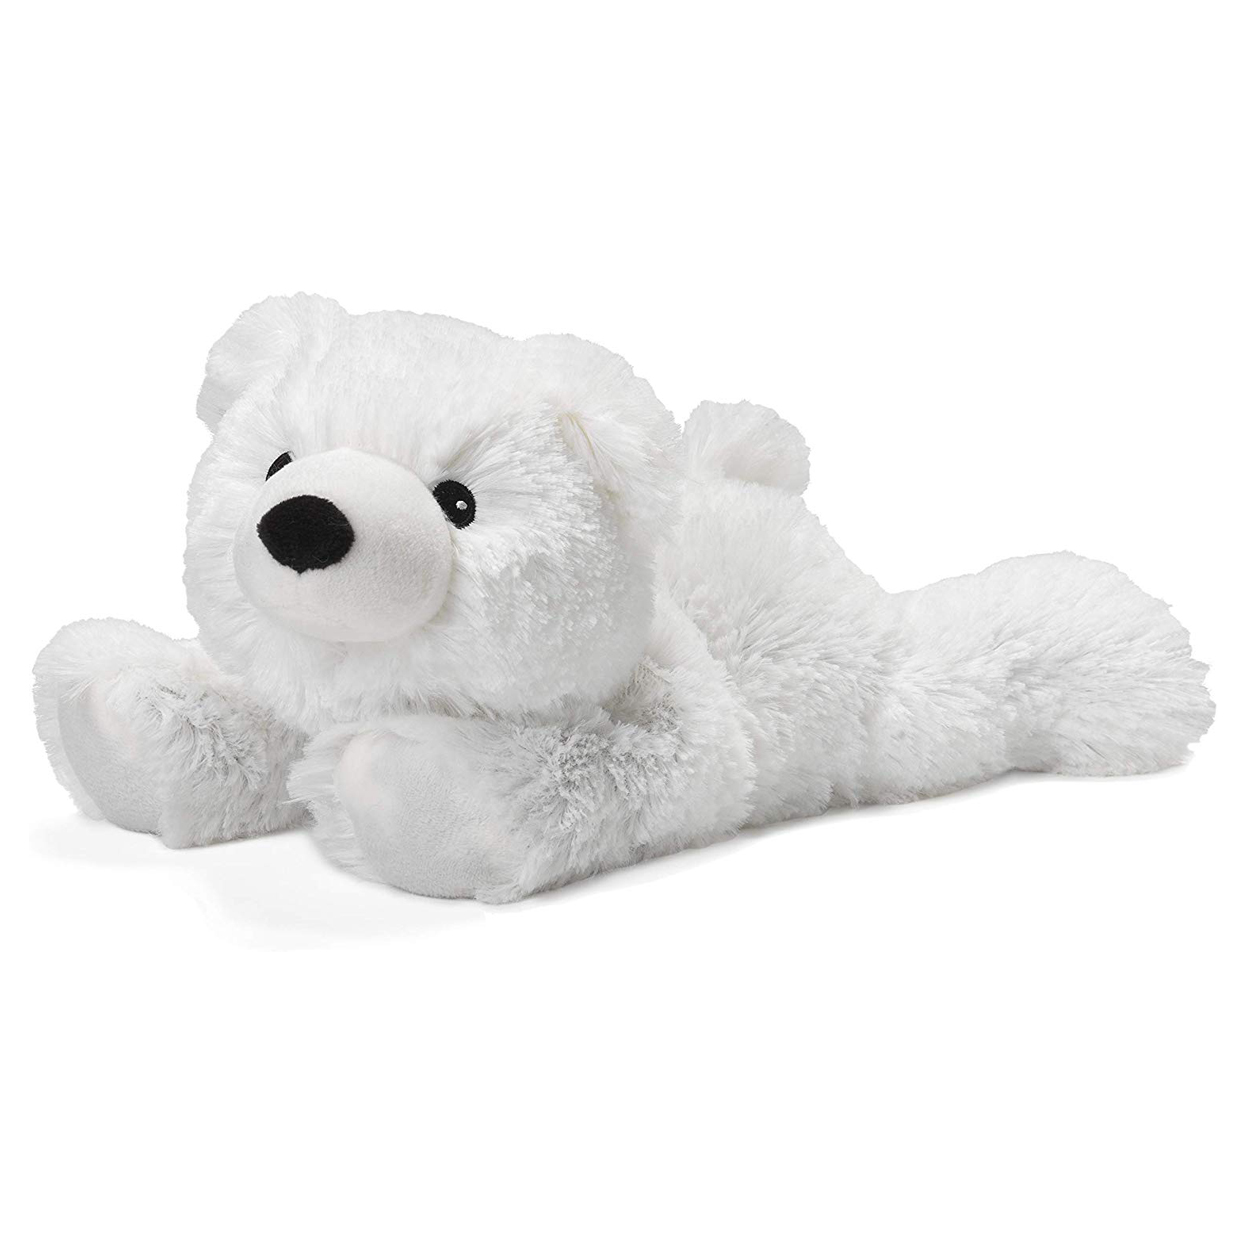 Intelex Warmies Polar Bear